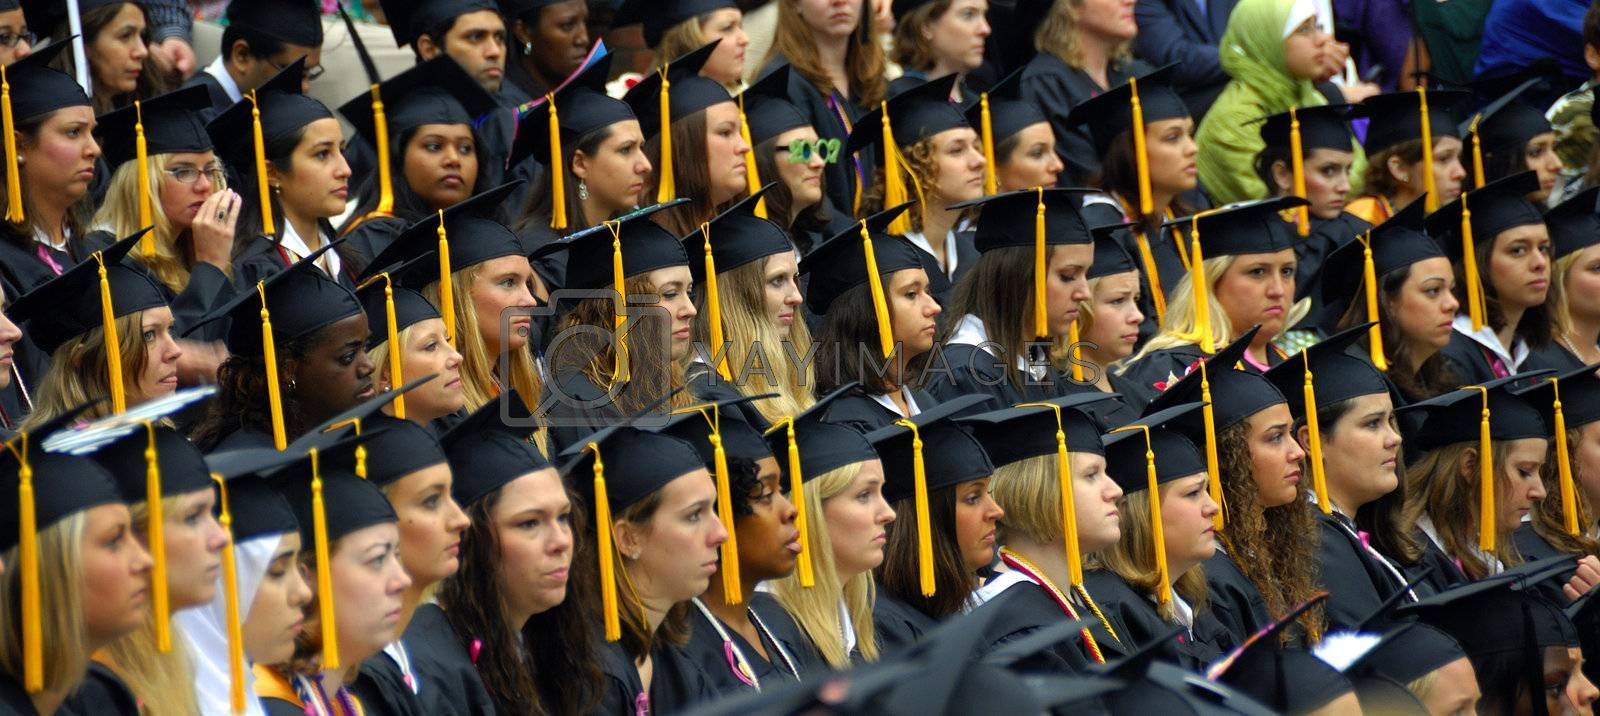 A row of womens graaduating in with some male graduates